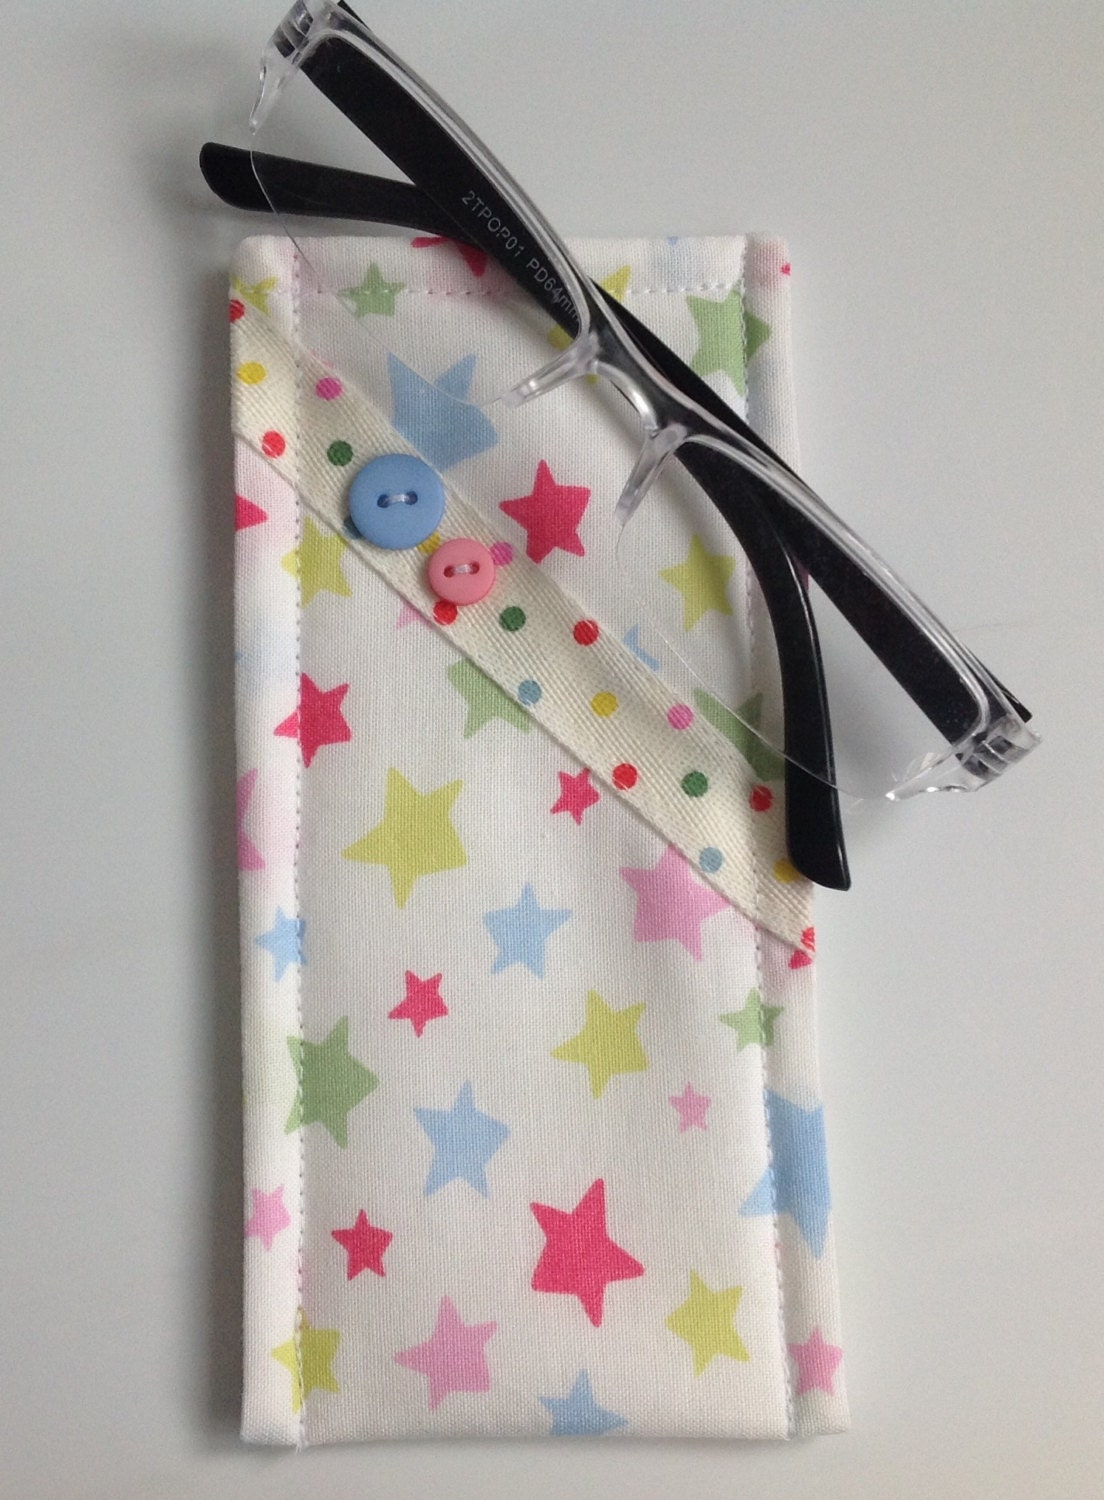 reduced cath kidston star fabric glasses case by sewmoira. Black Bedroom Furniture Sets. Home Design Ideas